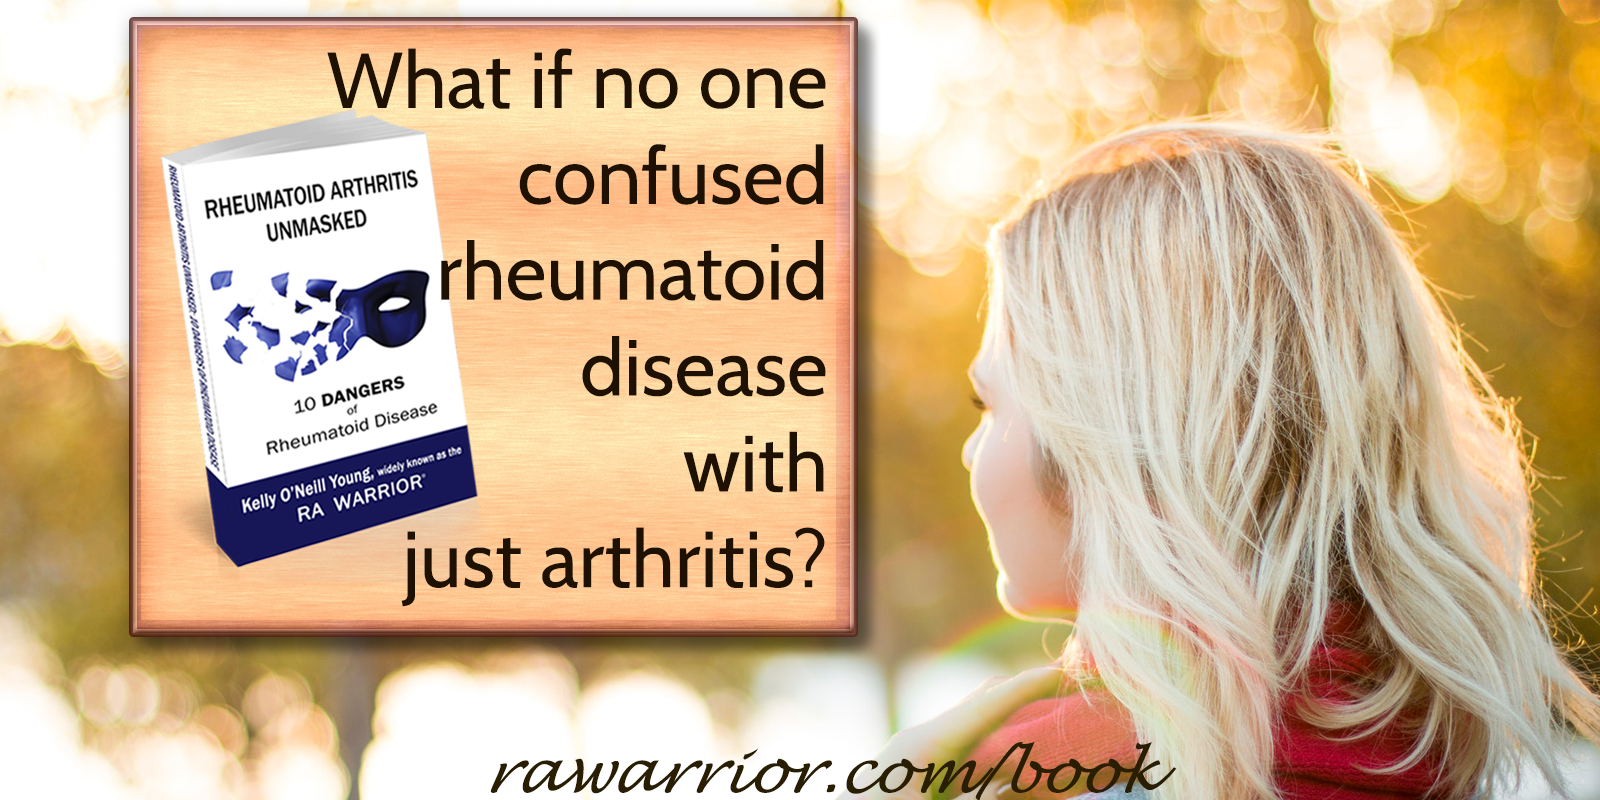 Rheumatoid Arthritis Unmasked: 10 Dangers of Rheumatoid Disease book